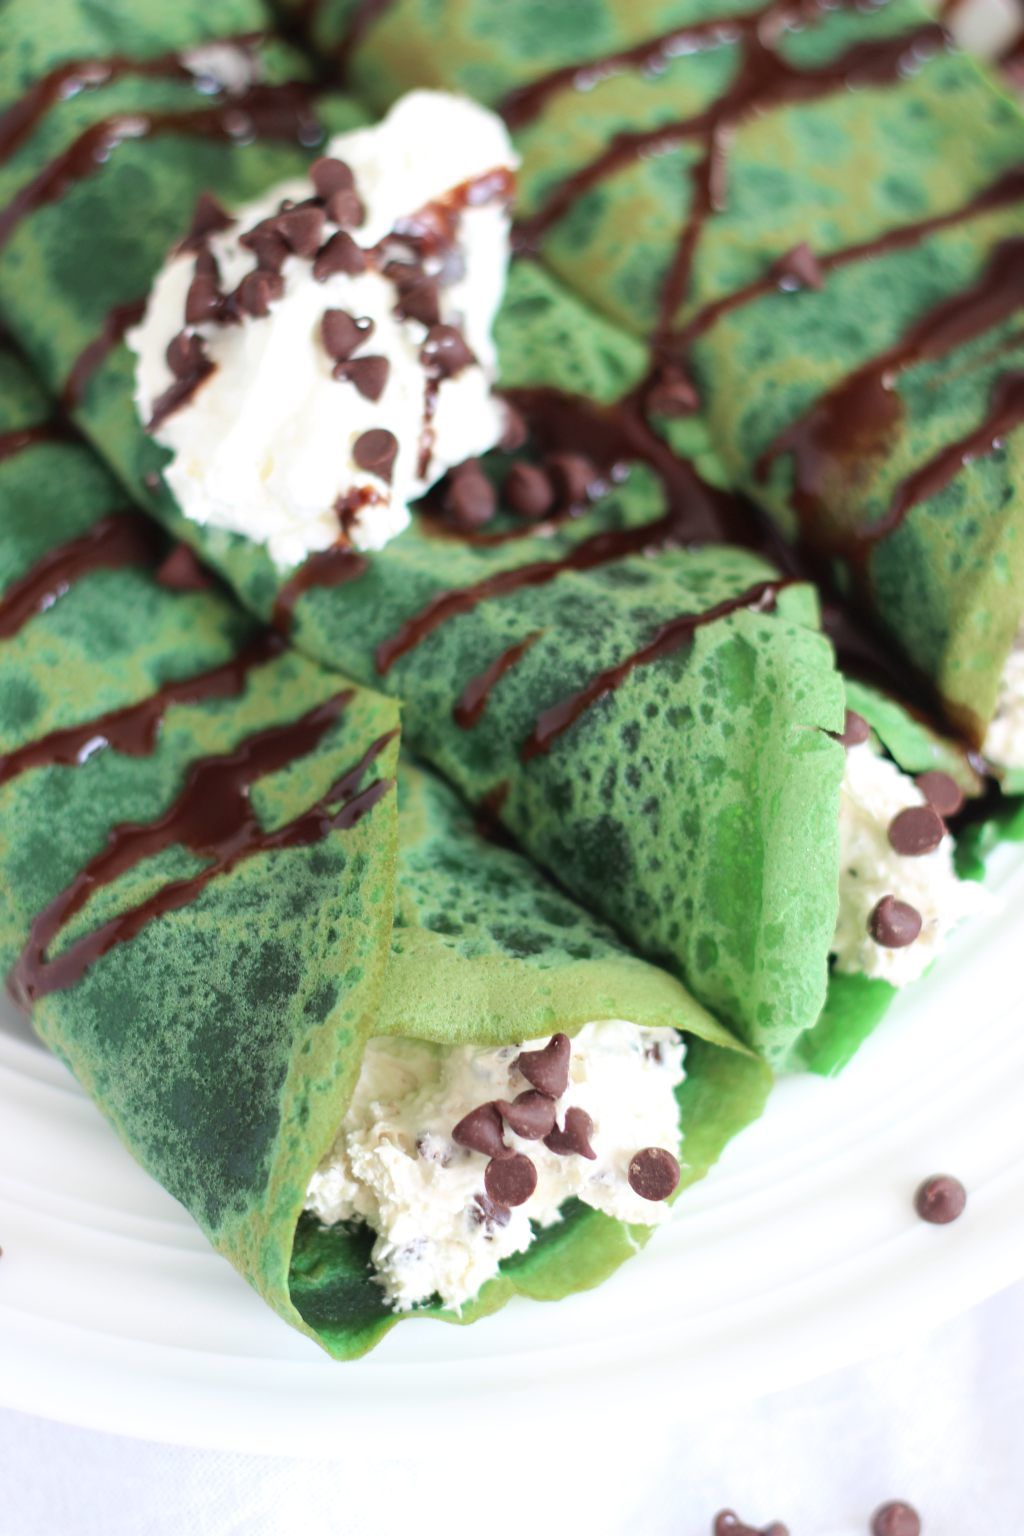 Green Velvet Crepes with Bailey's Chocolate Chip Cheesecake filling! The filling is dangerously good. It was somewhat inspired by this No-Bake Bailey's Cheesecakethat I made for St. Patrick's…